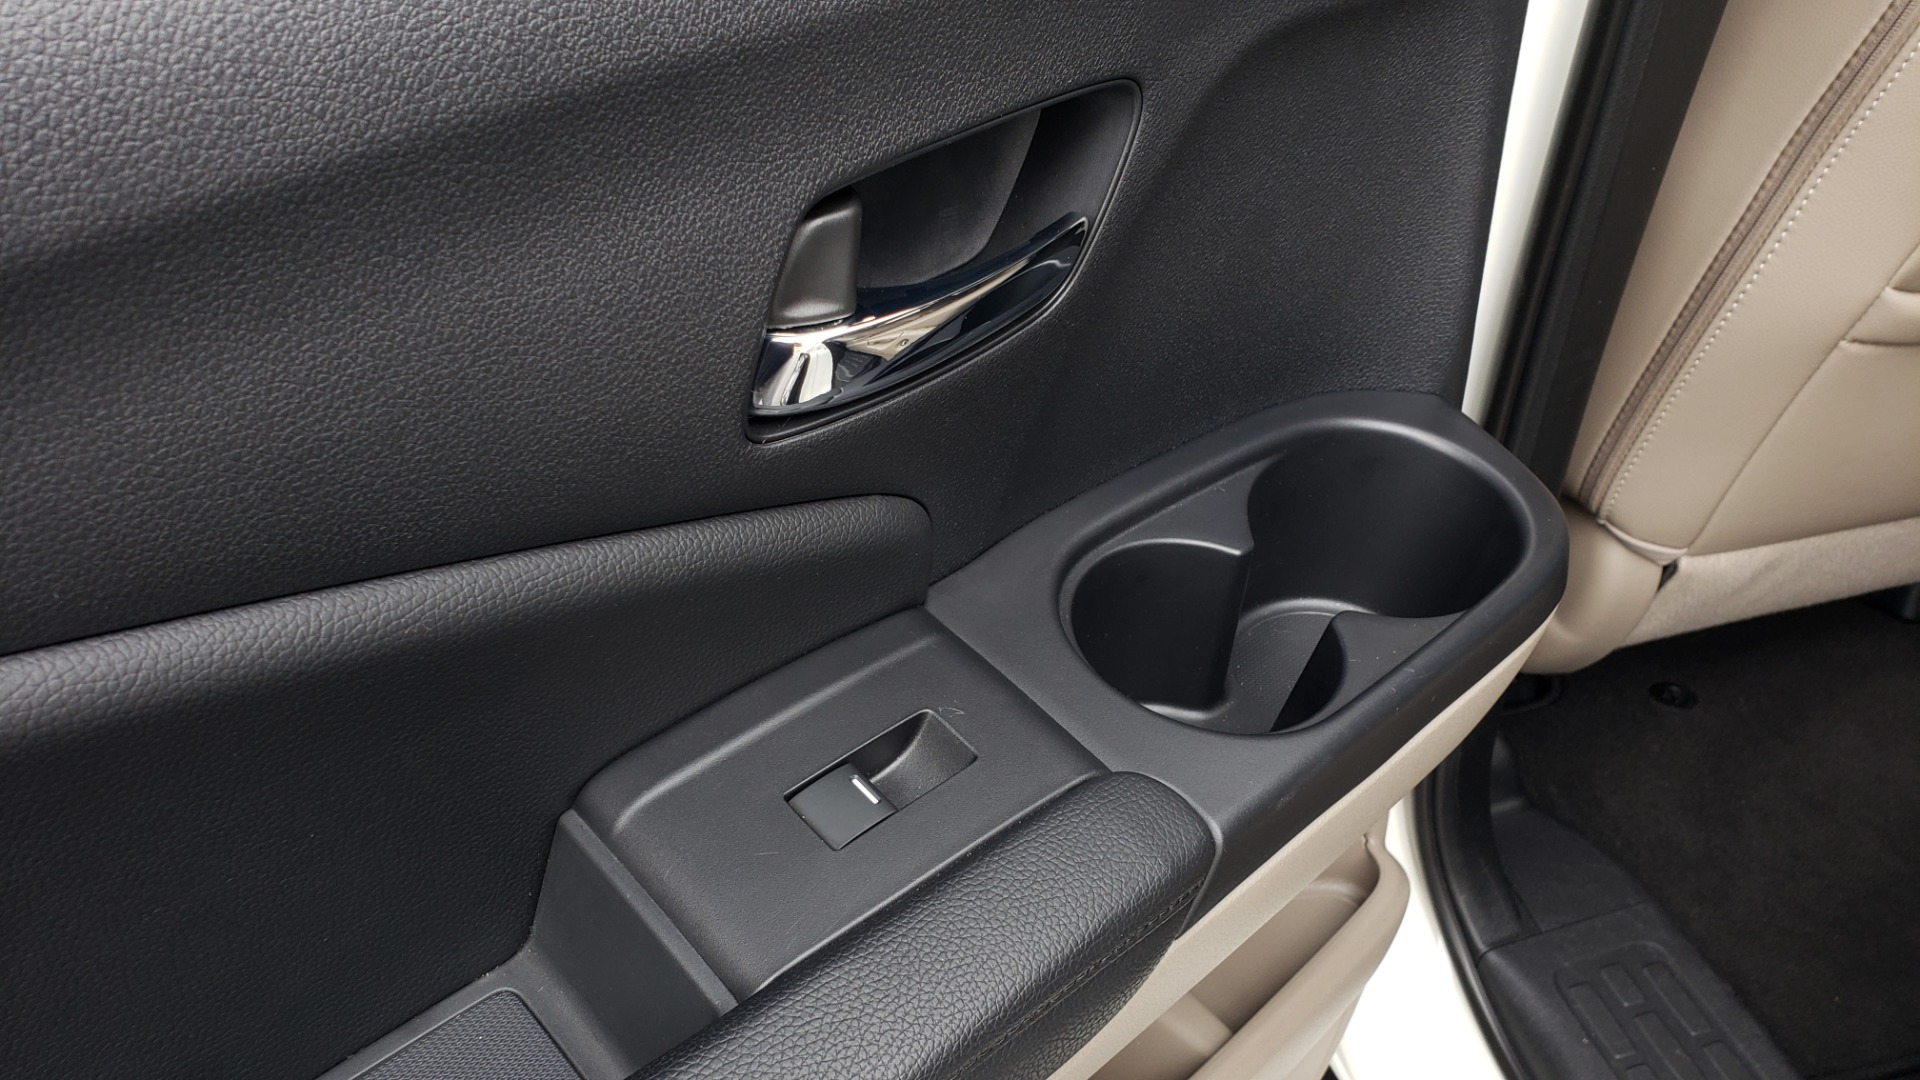 Used 2019 Honda PILOT EX-L / V6 / NAV / SUNROOF / DVD / 3-ROW / REARVIEW for sale Sold at Formula Imports in Charlotte NC 28227 62